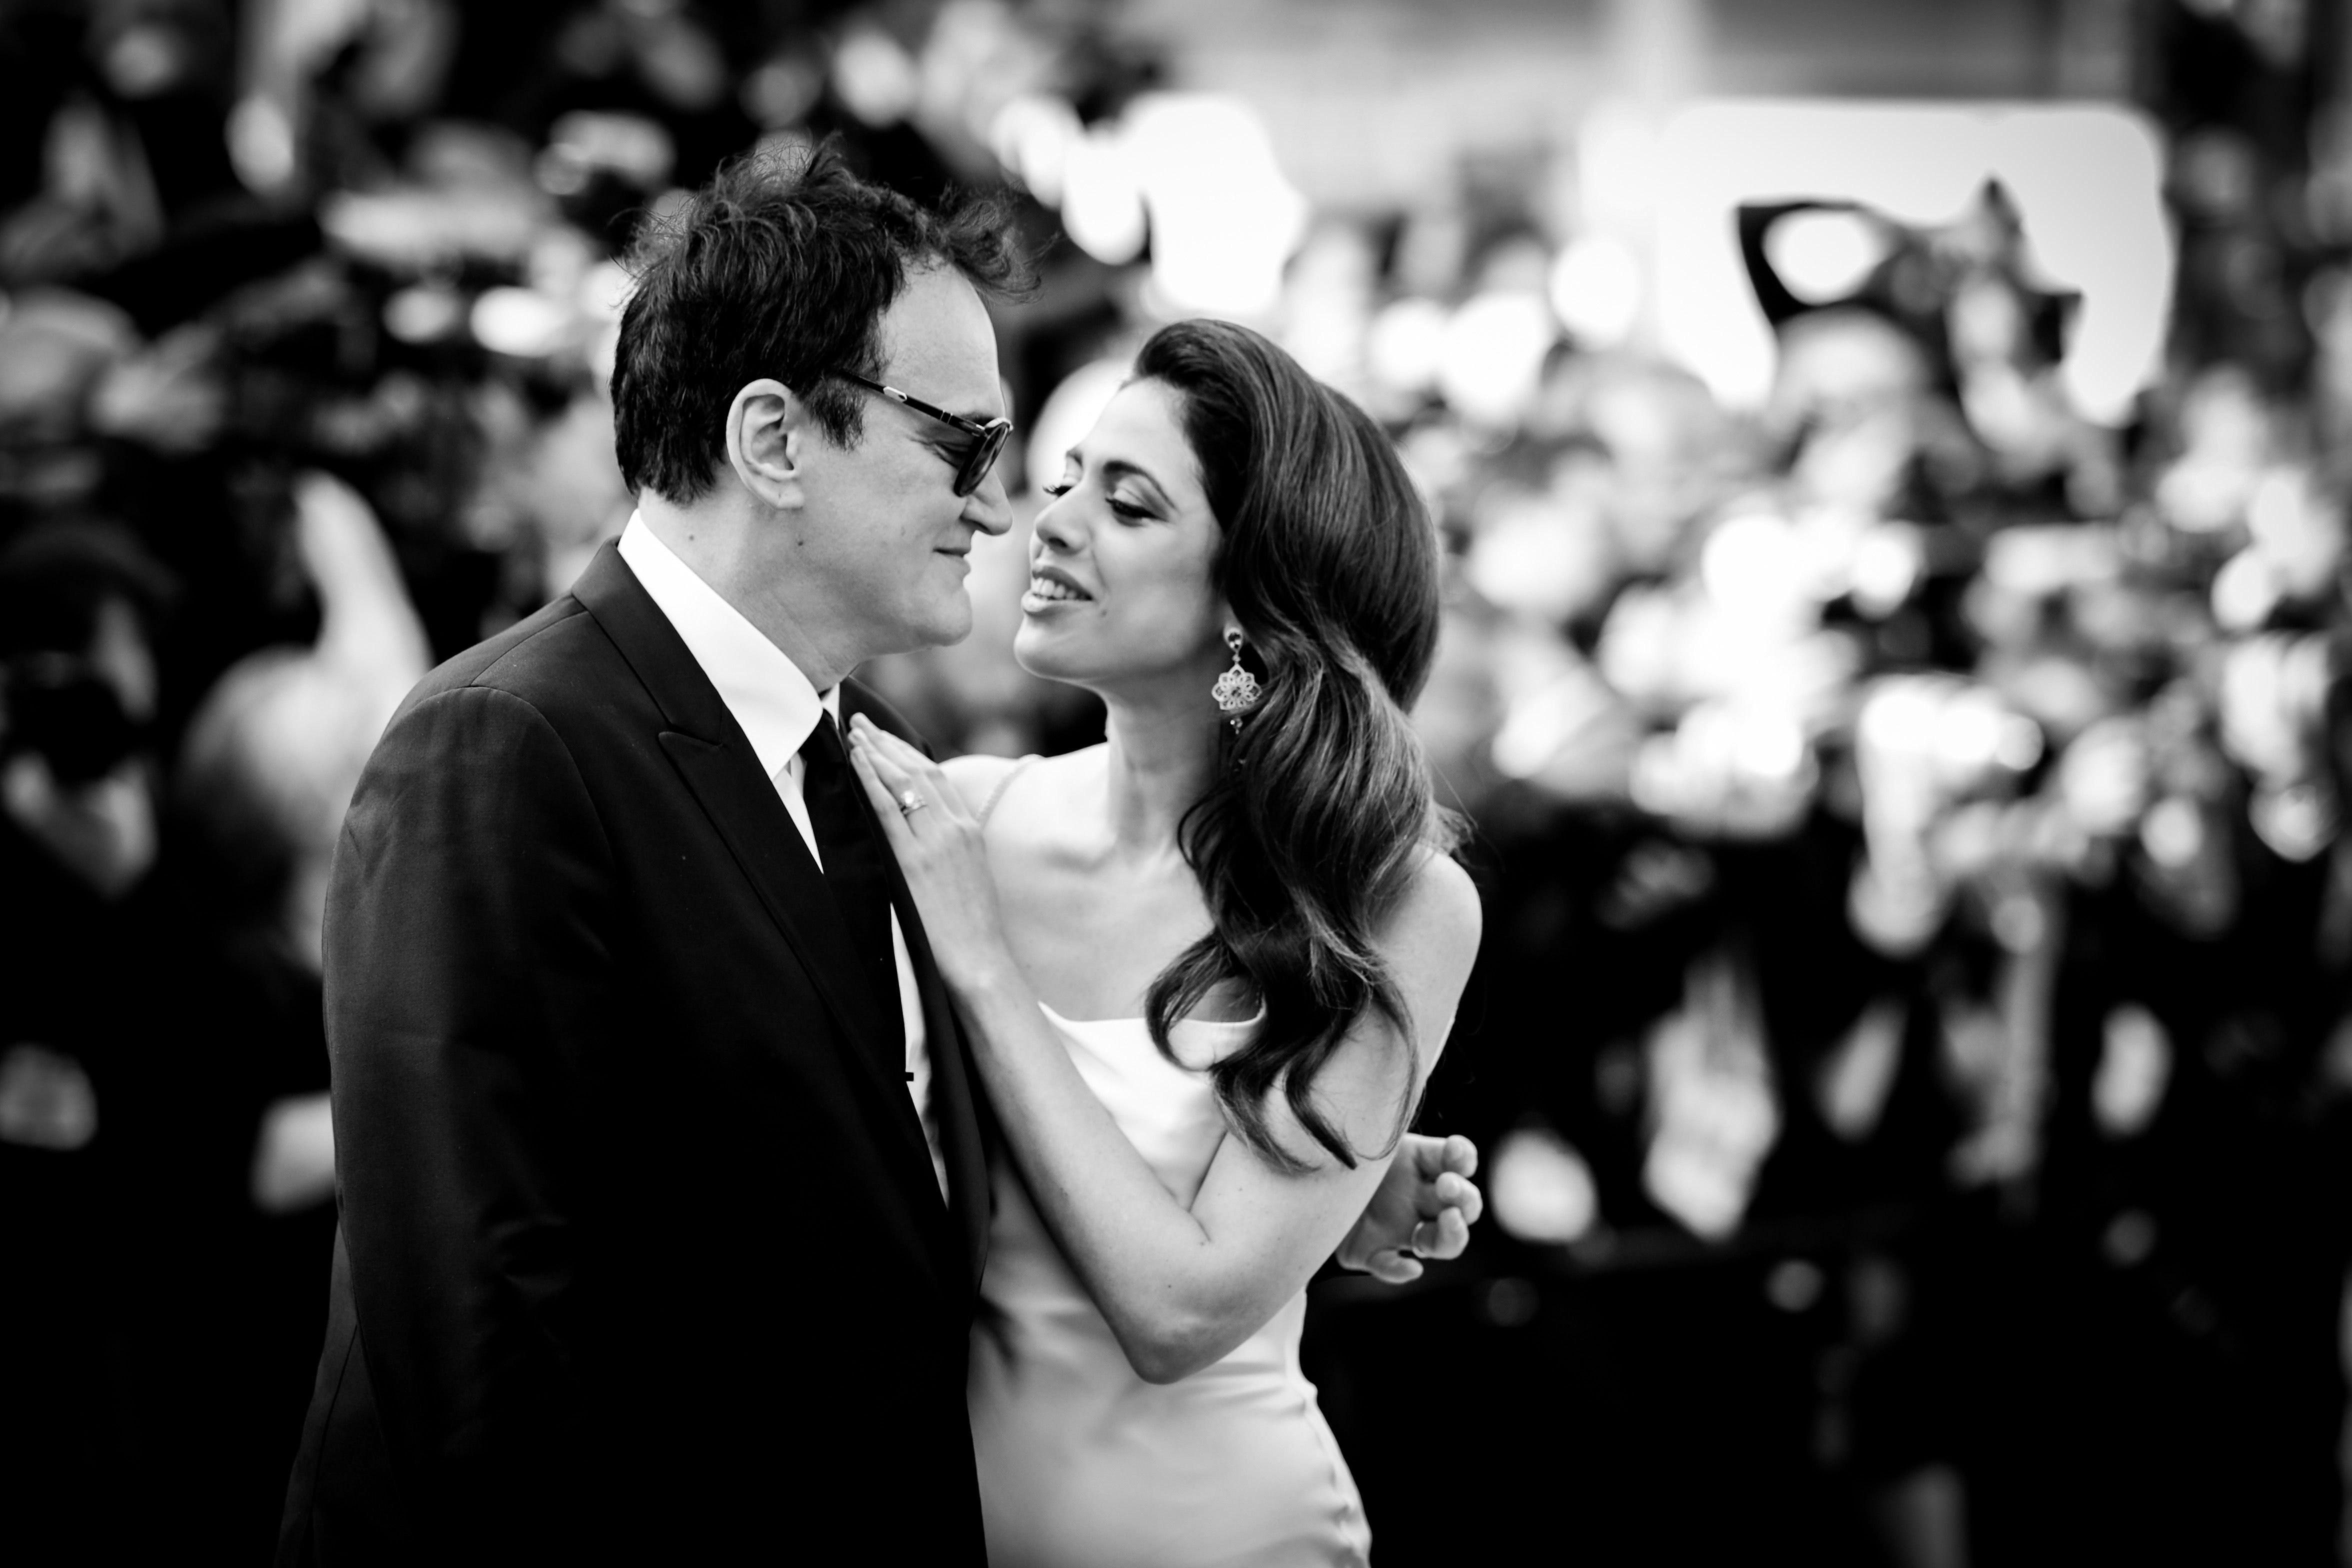 Quentin Tarantino and Daniella Tarantino at the 72nd annual Cannes Film Festival in 2019 in Cannes, France | Source: Getty Images